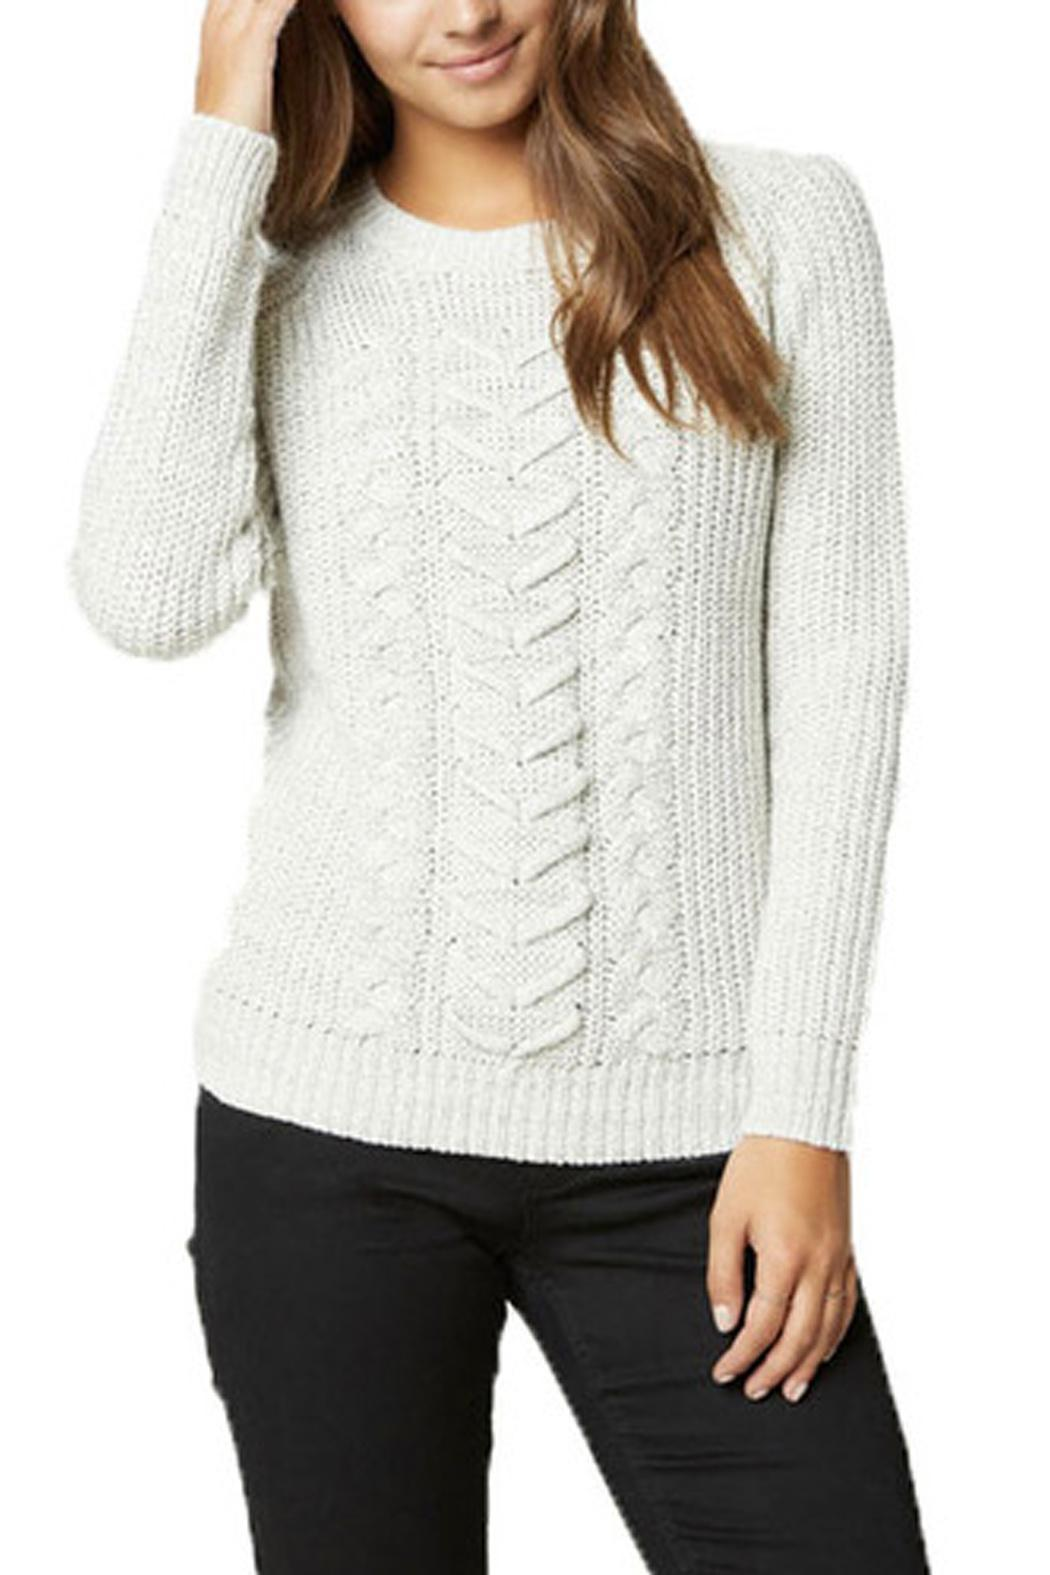 Vero Moda Knitting Yarns : Vero moda alice knit sweater from vancouver by privilege